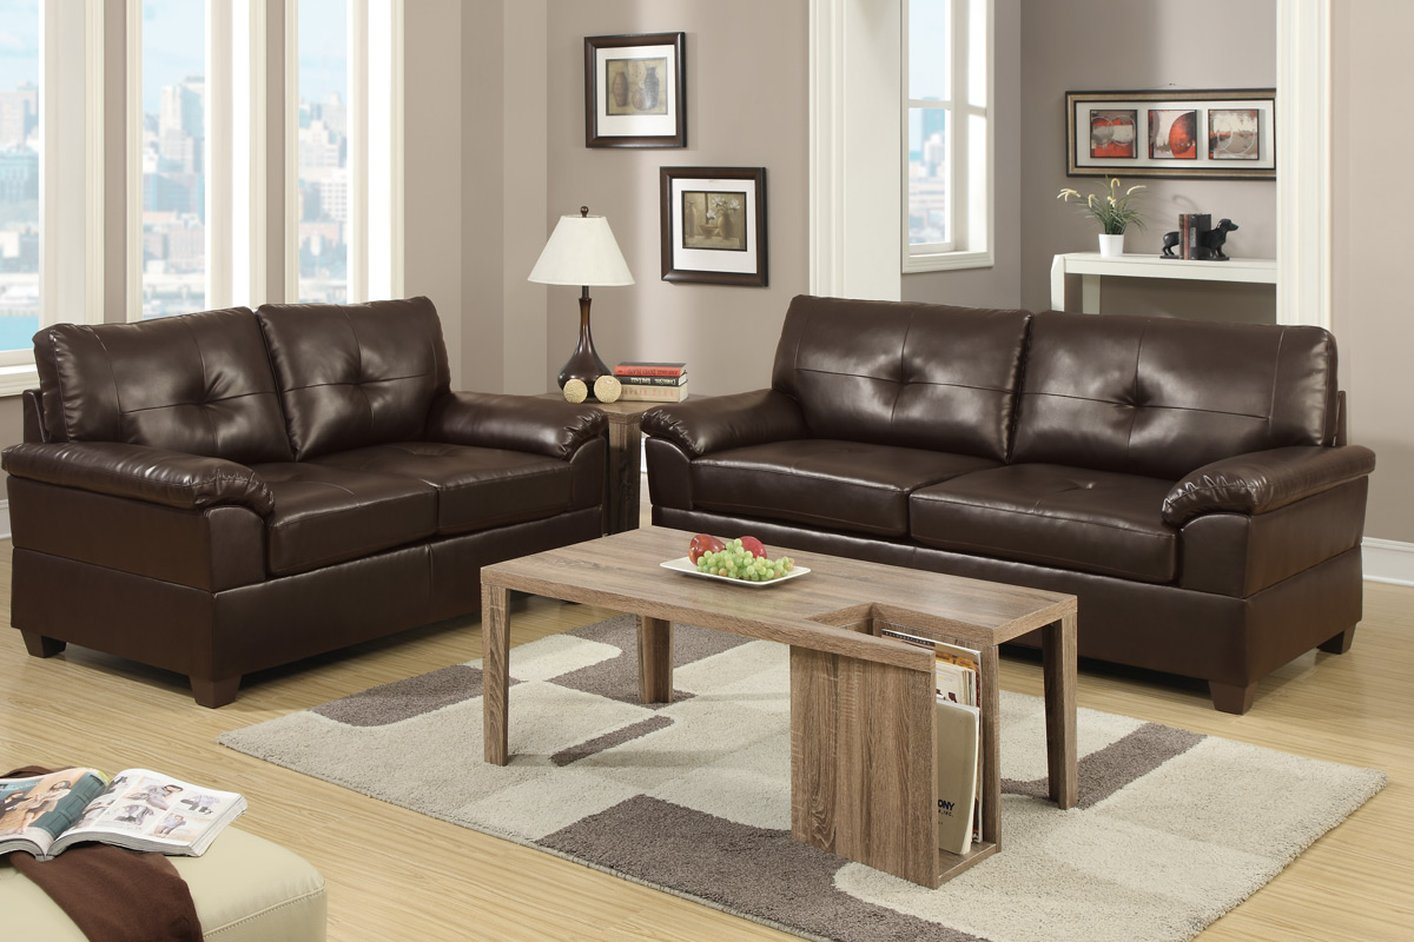 Poundex Elimination F7581 Brown Leather Sofa And Loveseat Set Steal A Sofa Furniture Outlet